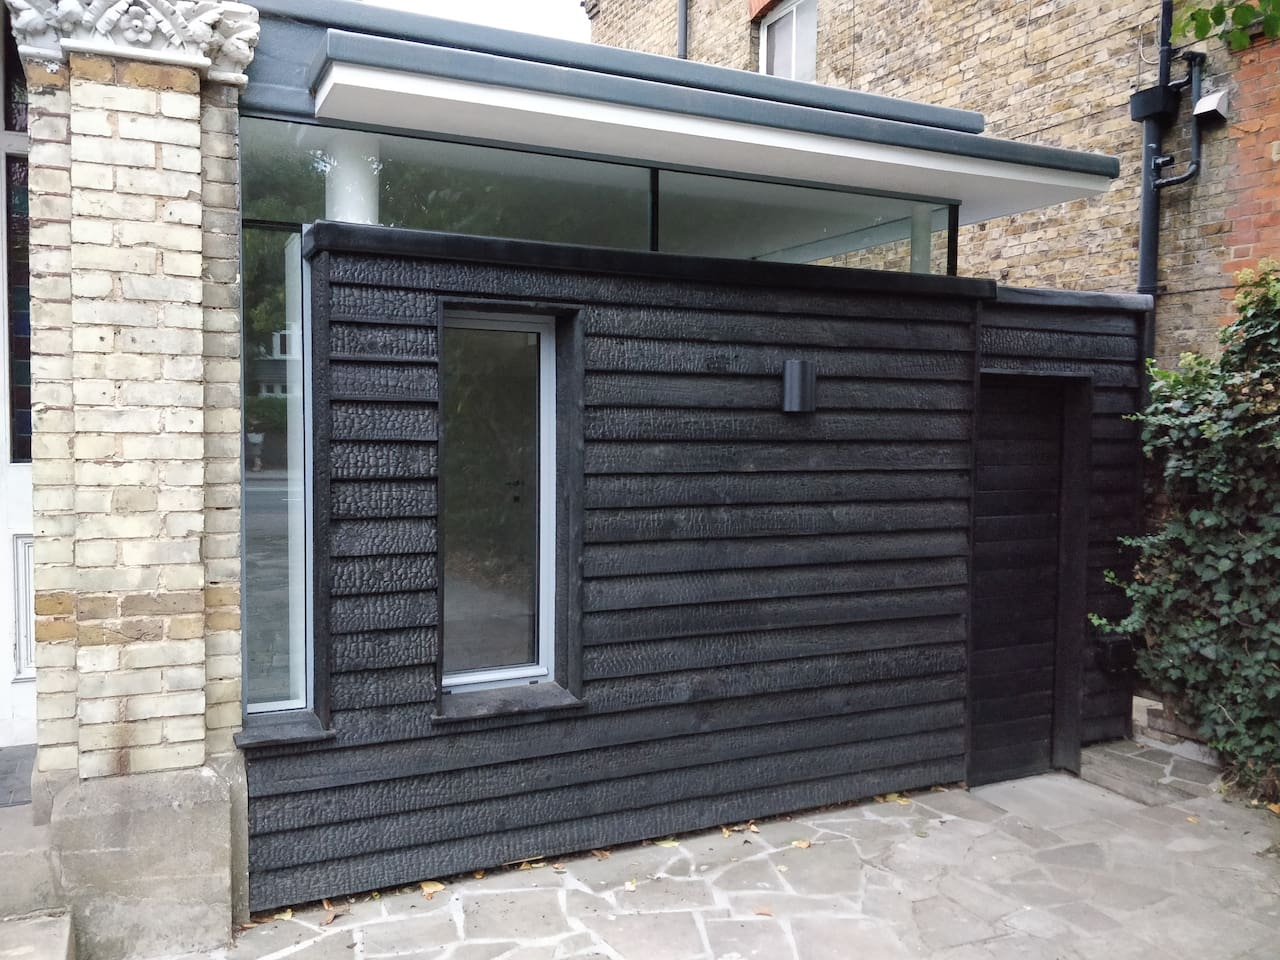 External view of studio and private entrance